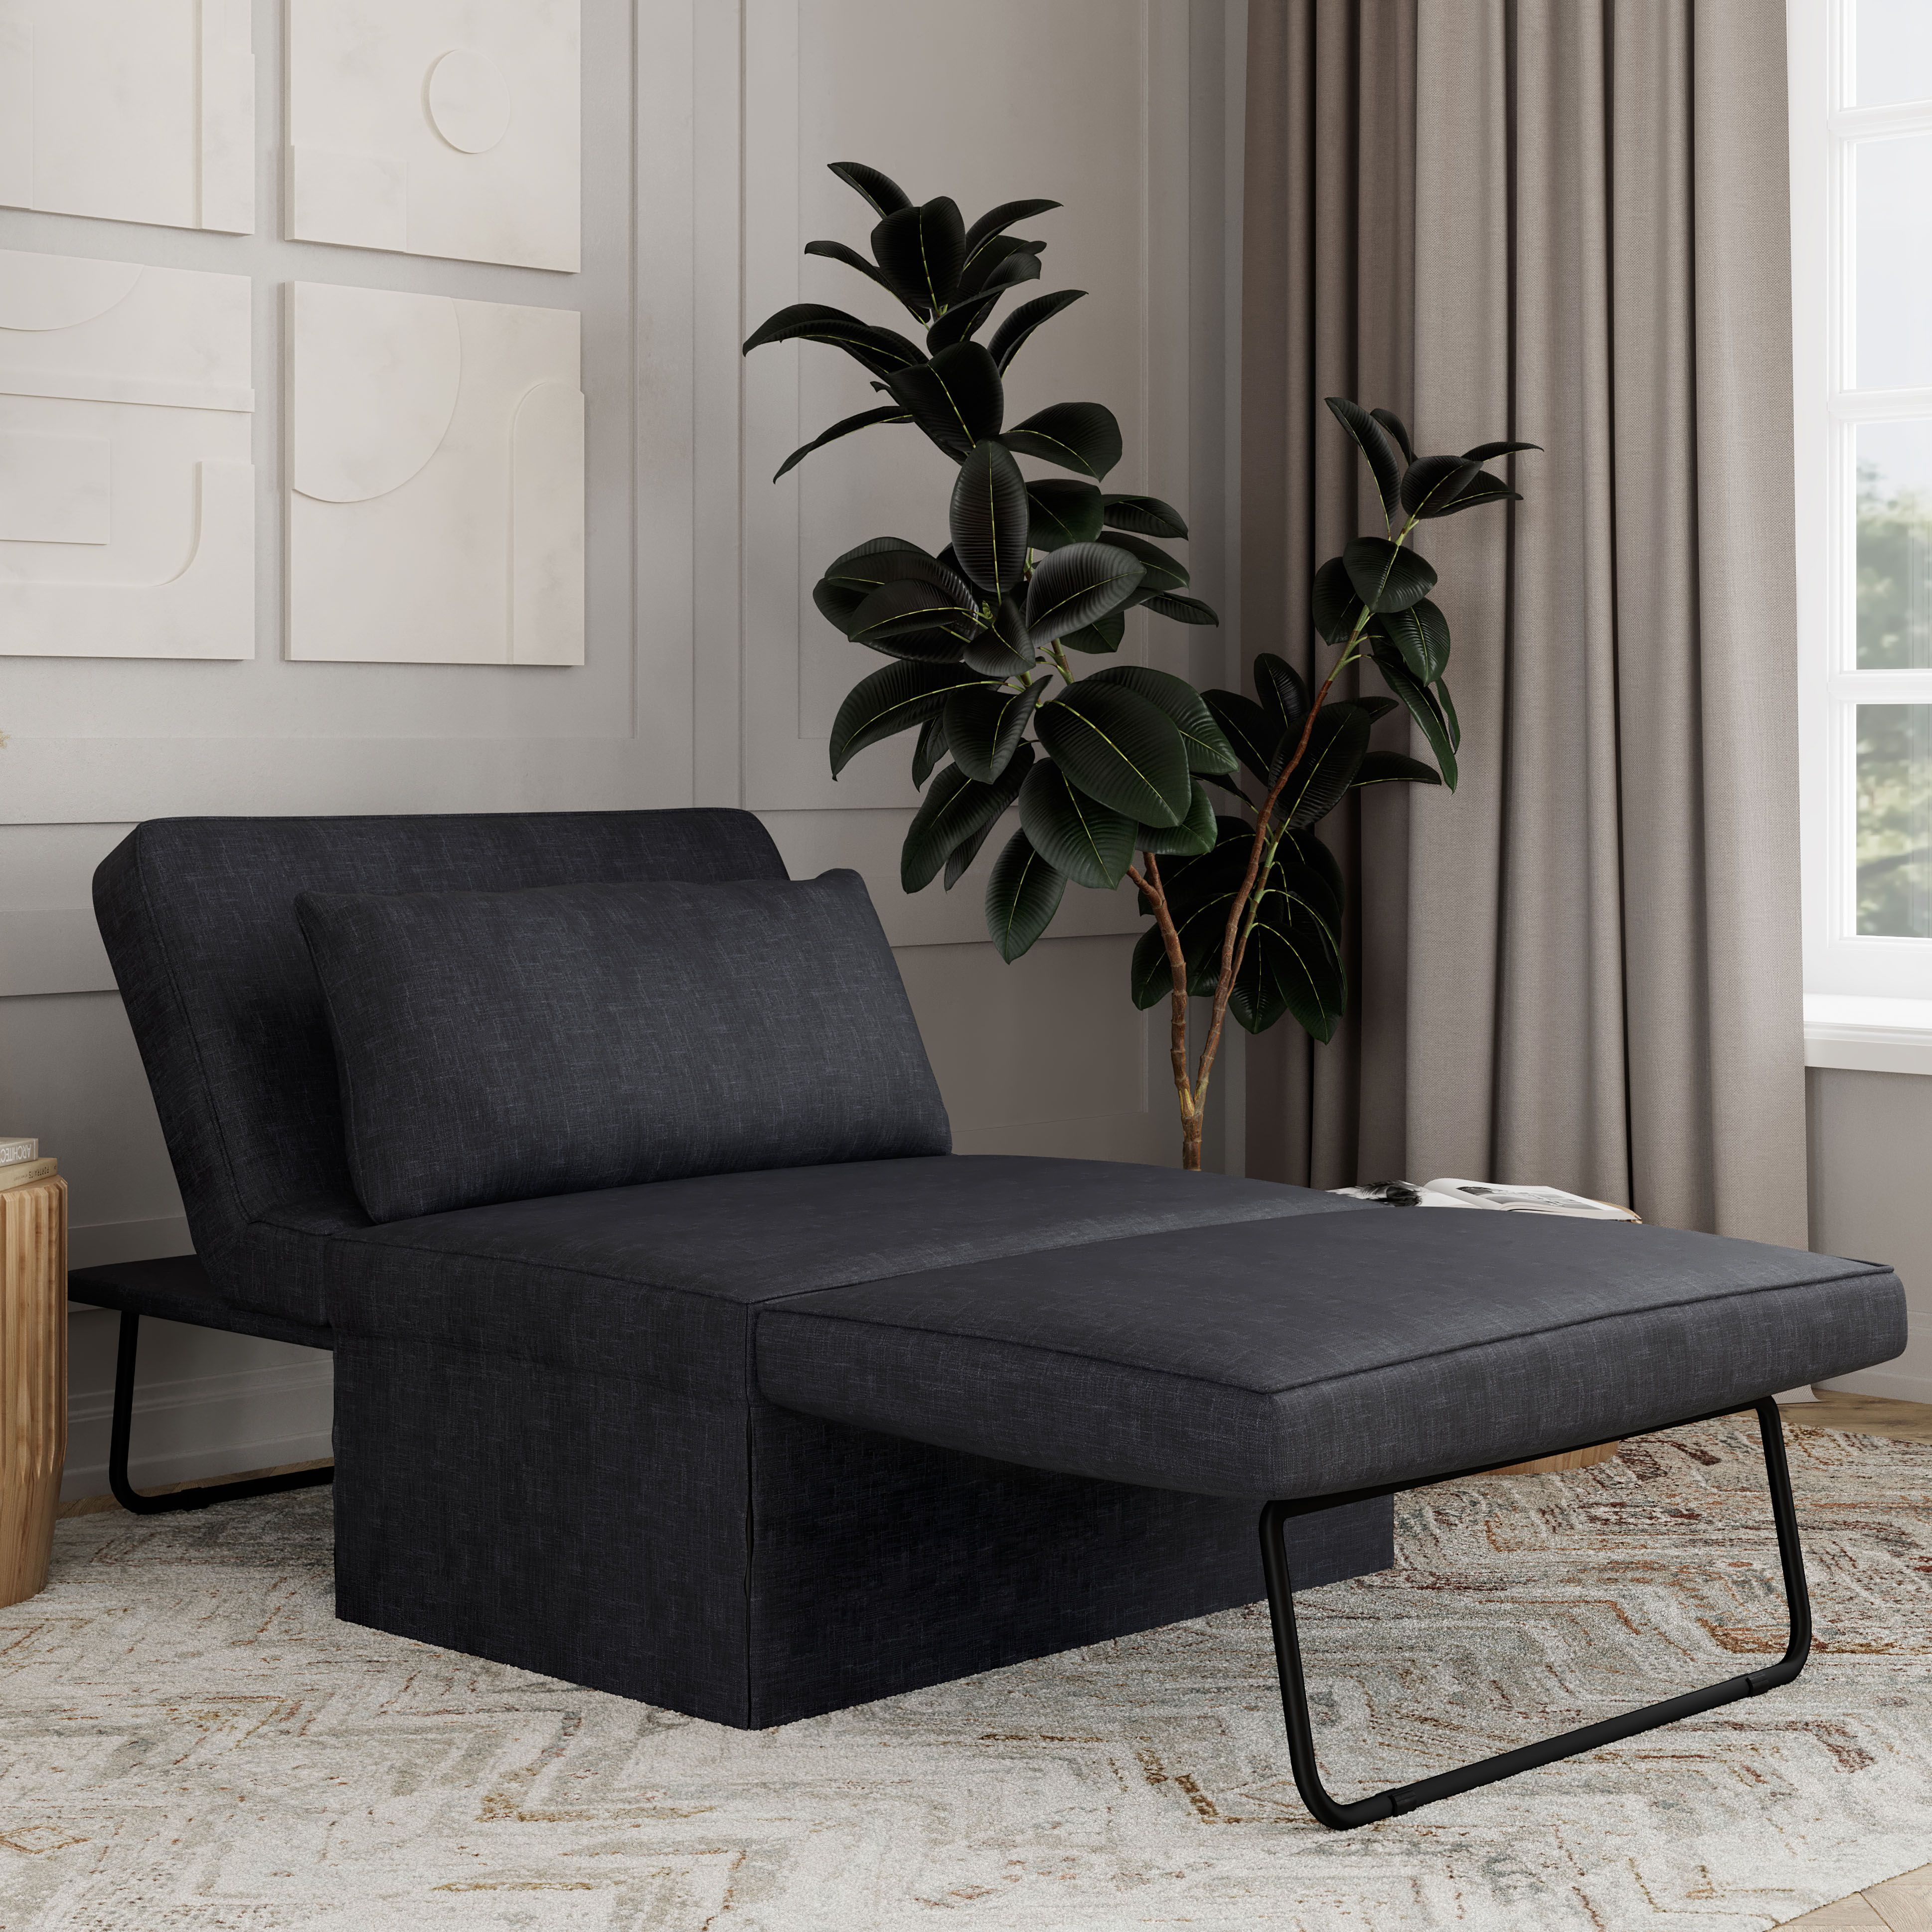 Relax A Lounger Metro Otto Kube Multi Positional Ottoman Chaise Lounger Sleeper Charcoal Walmart Com In 2021 Chaise Lounger Sleeper Ottoman Queen Size Sofa Bed